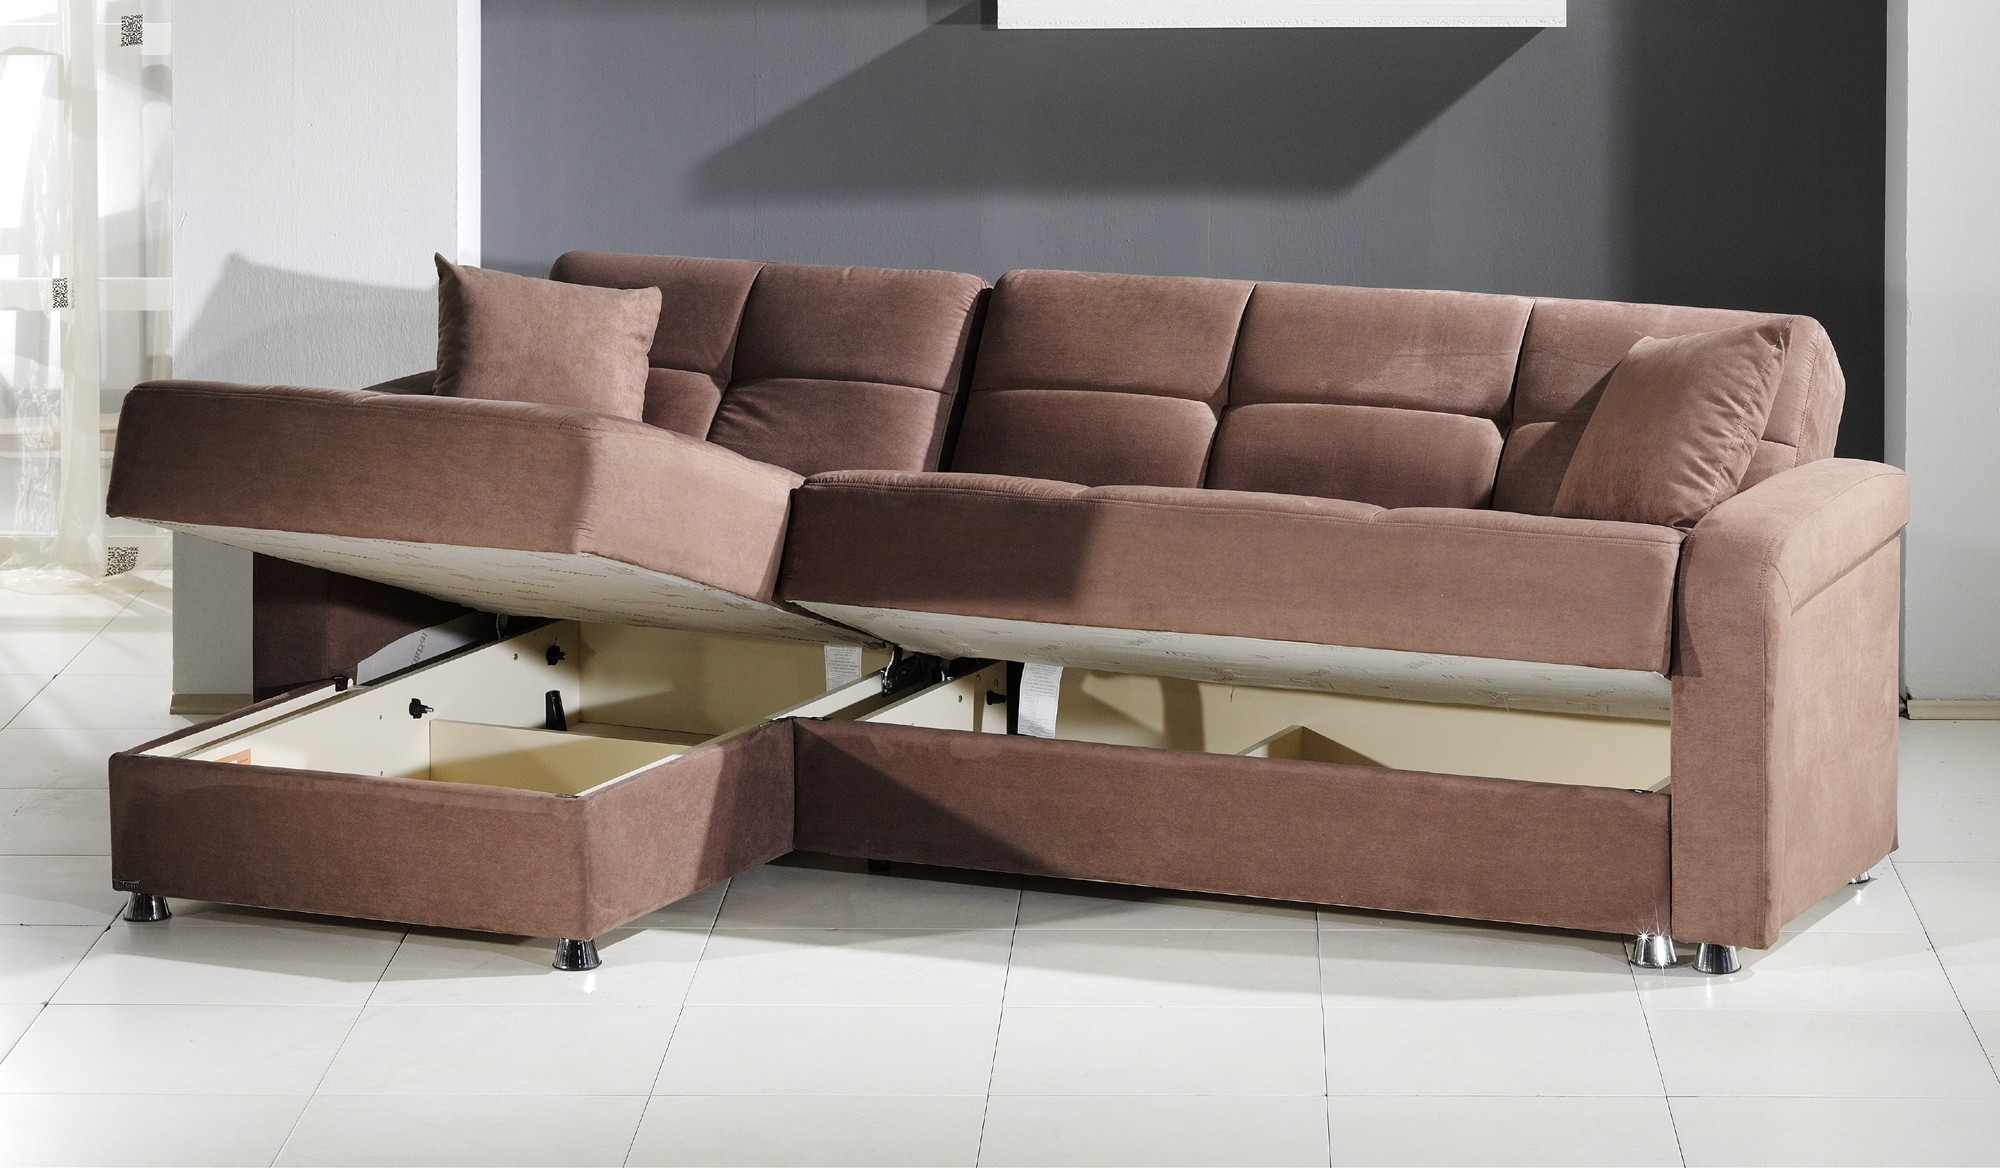 Best And Newest Vision Convertible Sectional Sofa In Rainbow Truffleistikbal Pertaining To Convertible Sectional Sofas (View 4 of 20)